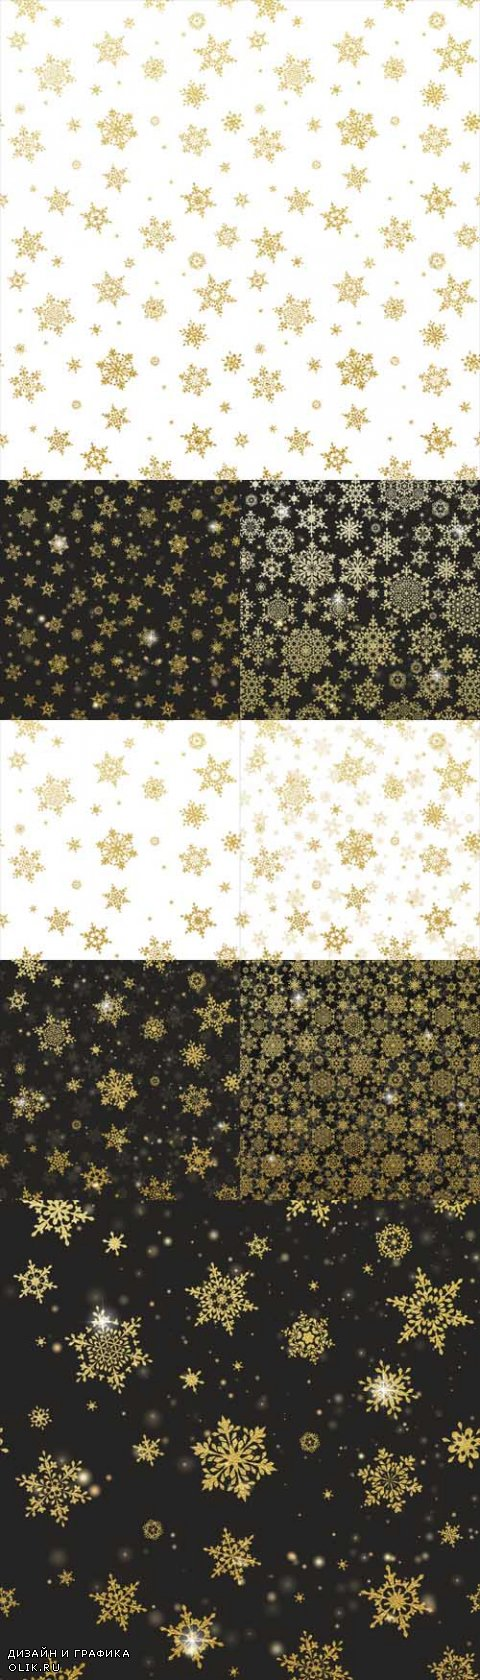 Vector Shining Gold Snowflakes Backgrounds